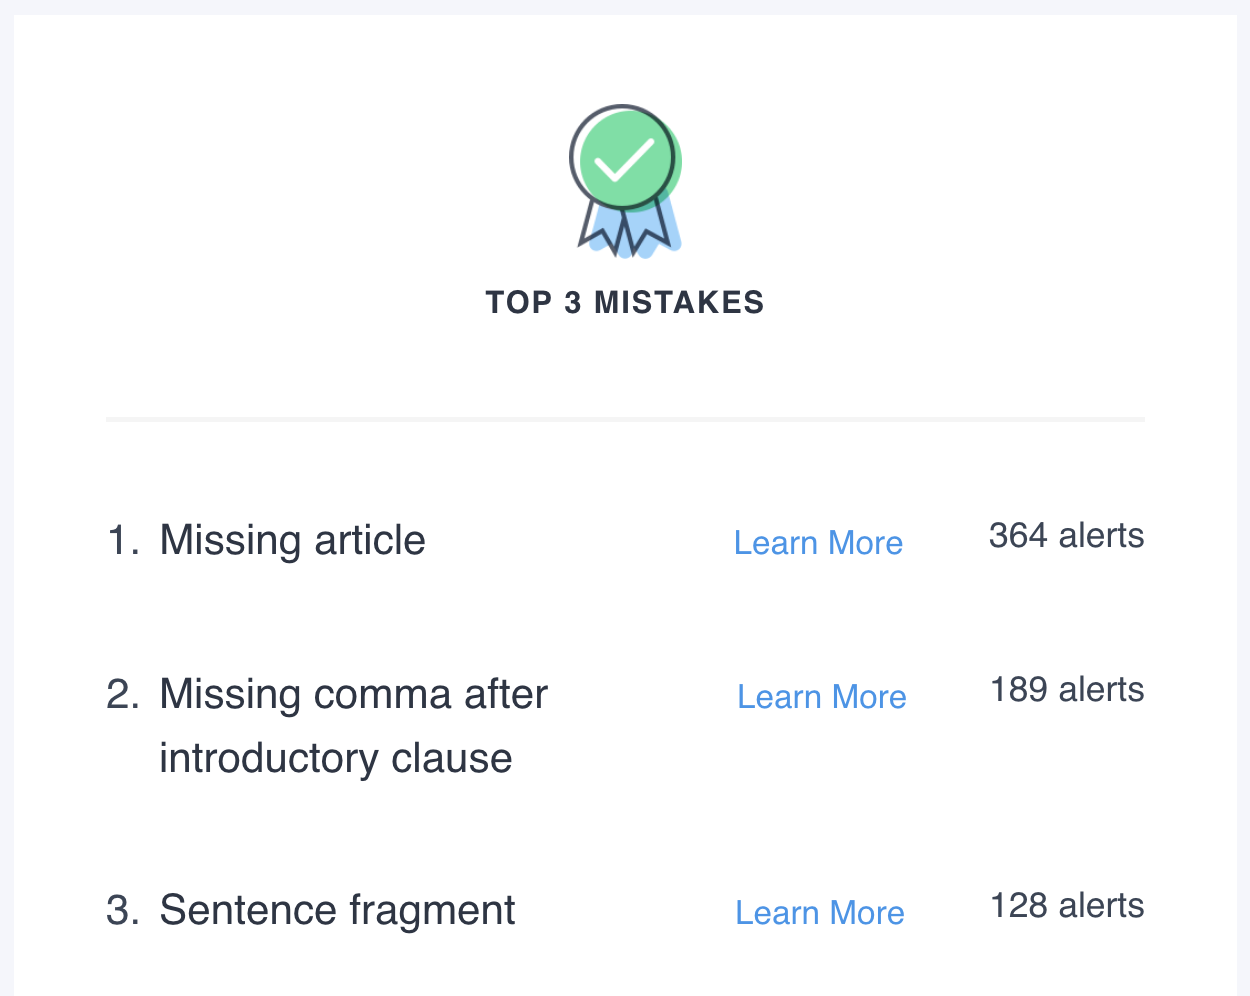 Top 3 Grammar Mistakes in Work Checked with Grammarly the week of 2018-12-24